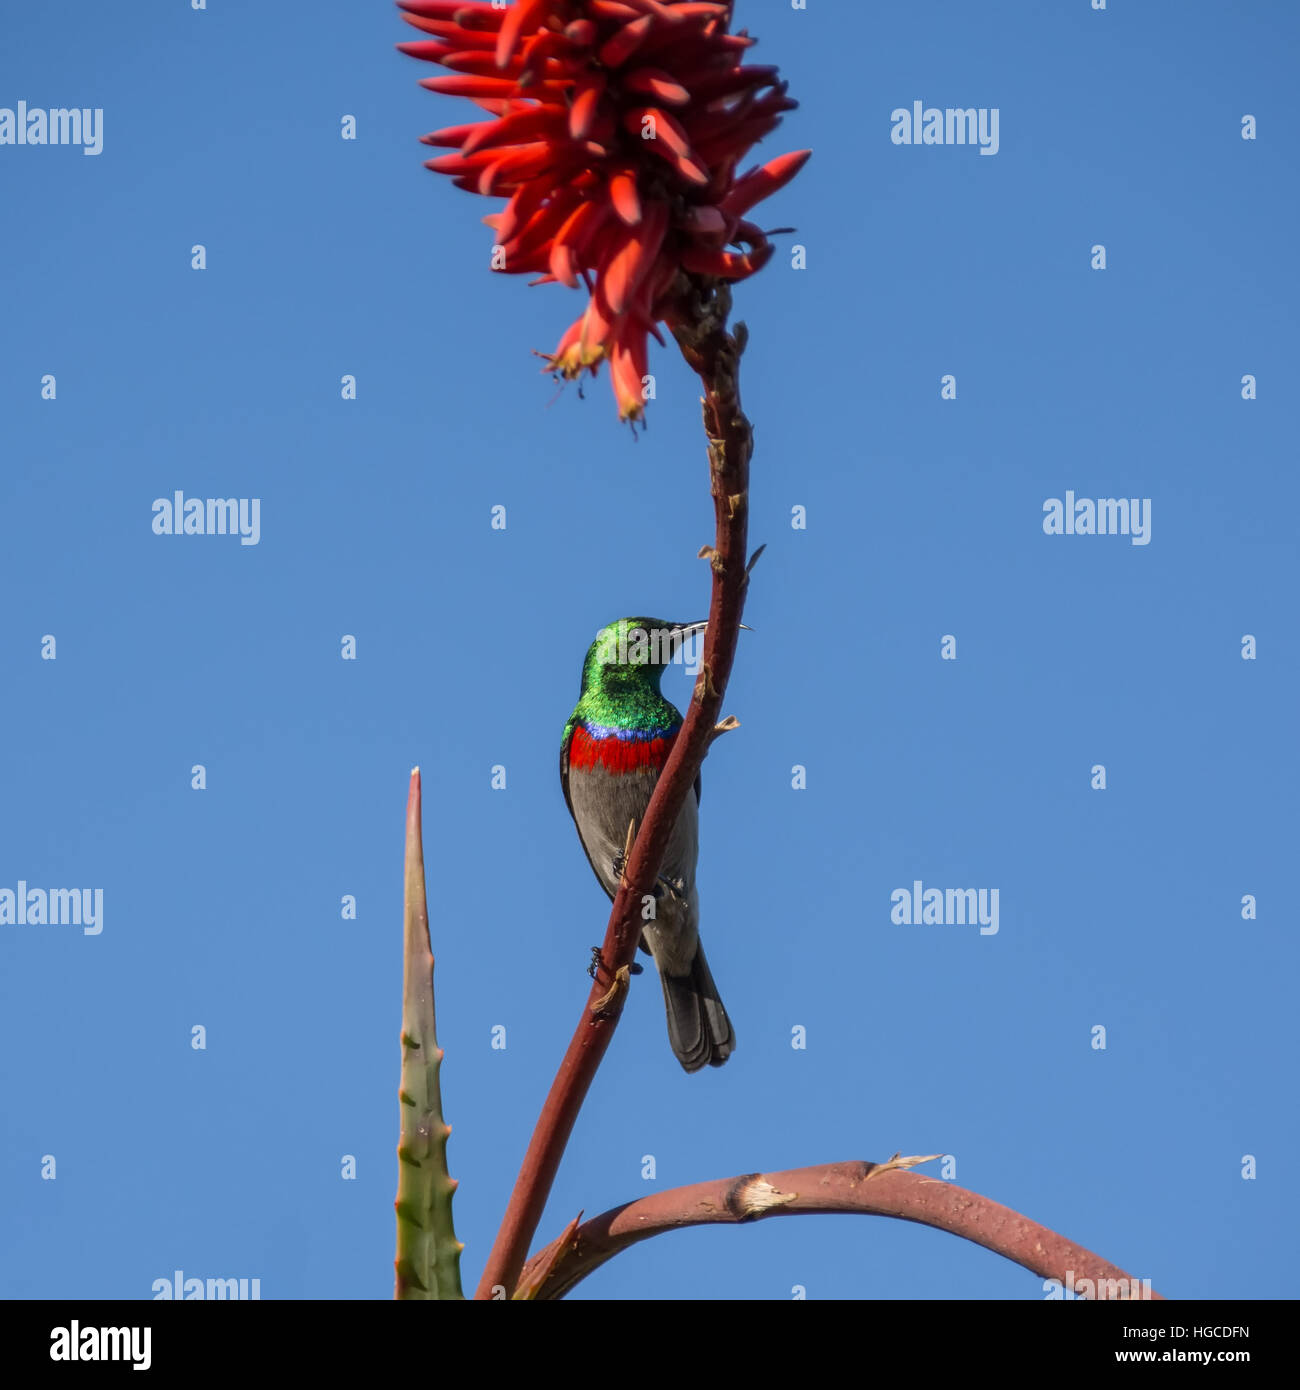 A Southern Double-collared Sunbird perched on a red aloe plant in Southern Africa - Stock Image